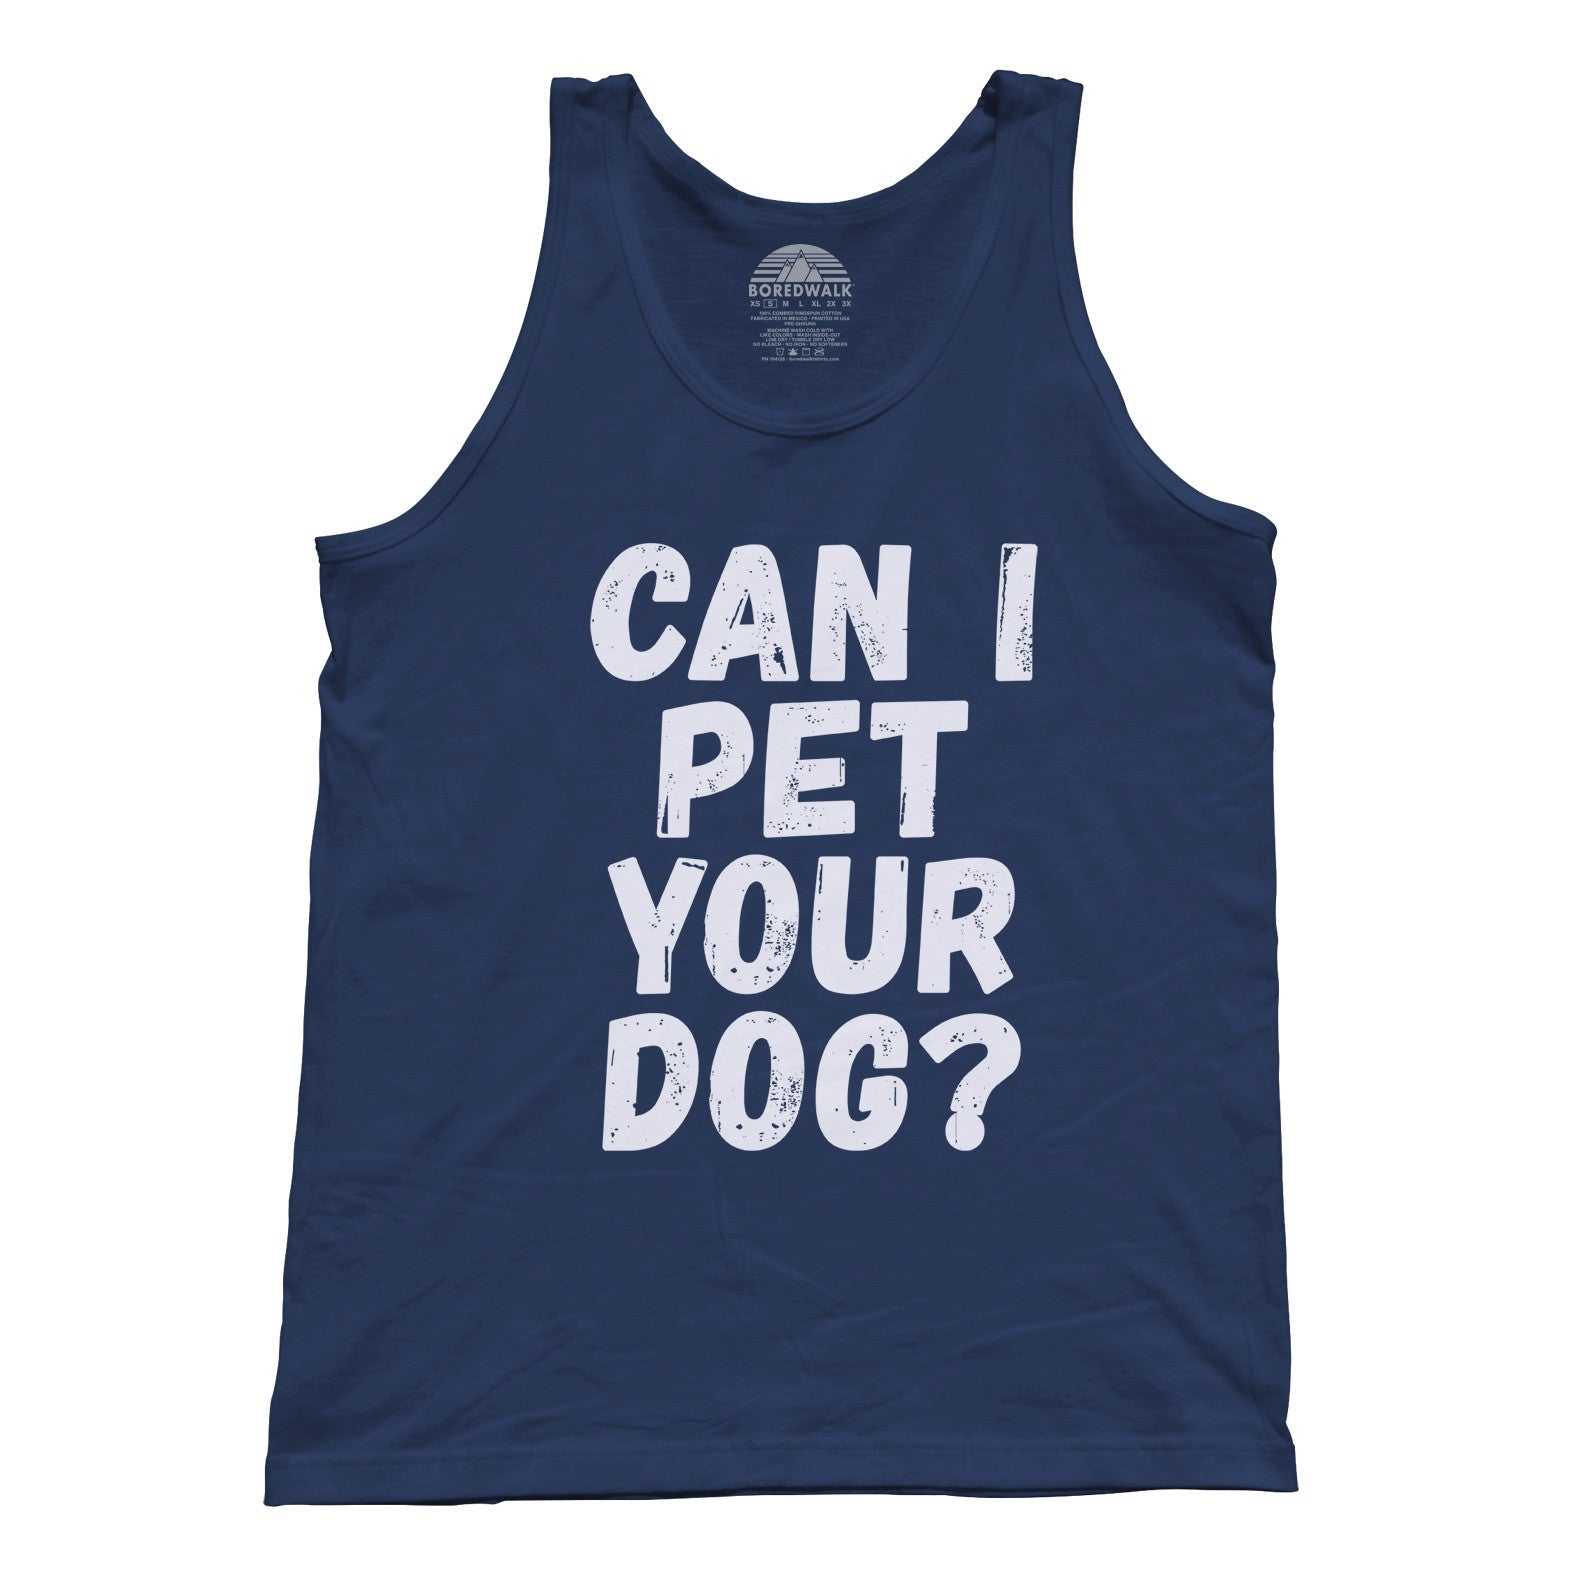 Unisex Can I Pet Your Dog Tank Top - Funny Dog Lover Shirt